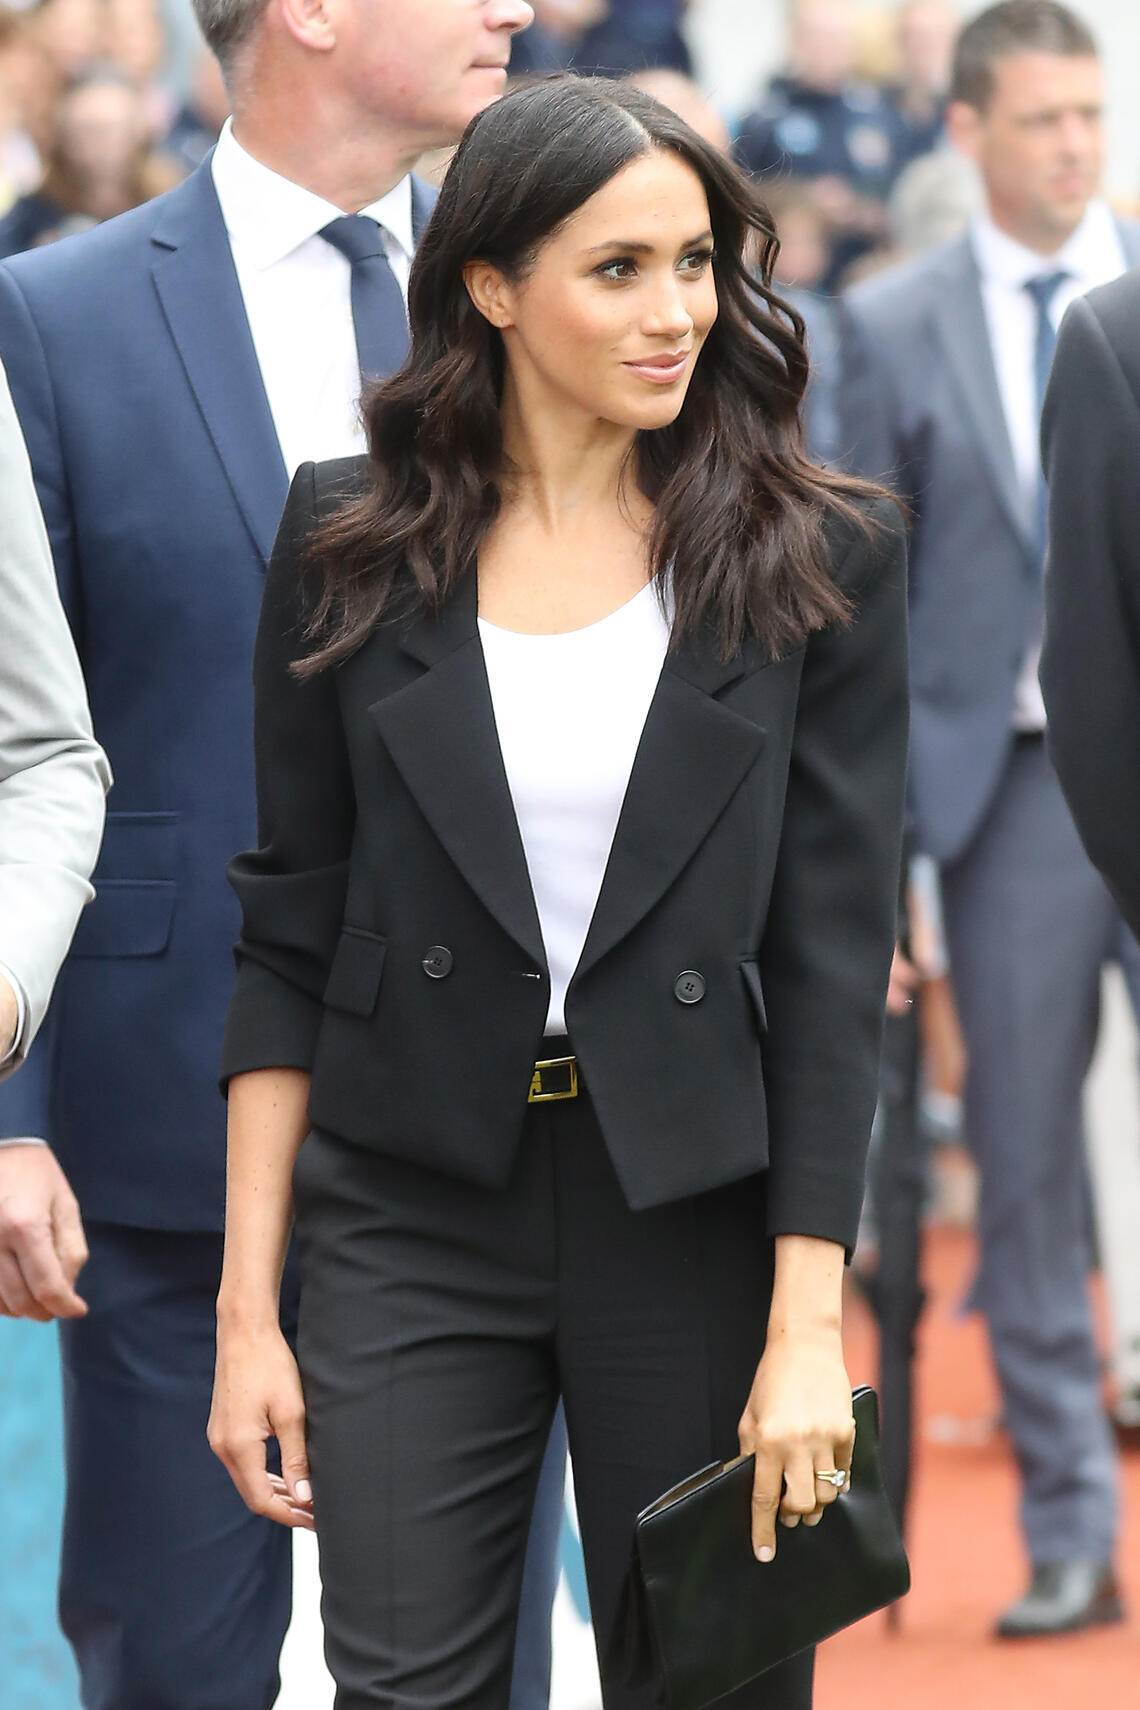 DUBLIN, IRELAND - JULY 11:  Meghan, Duchess of Sussex visits Croke Park, home of Ireland's largest sporting organisation, the Gaelic Athletic Association, with Prince Harry, Duke of Sussex during their visit to Ireland on July 11, 2018 in Dublin, Ireland.  (Photo by Chris Jackson/Getty Images)